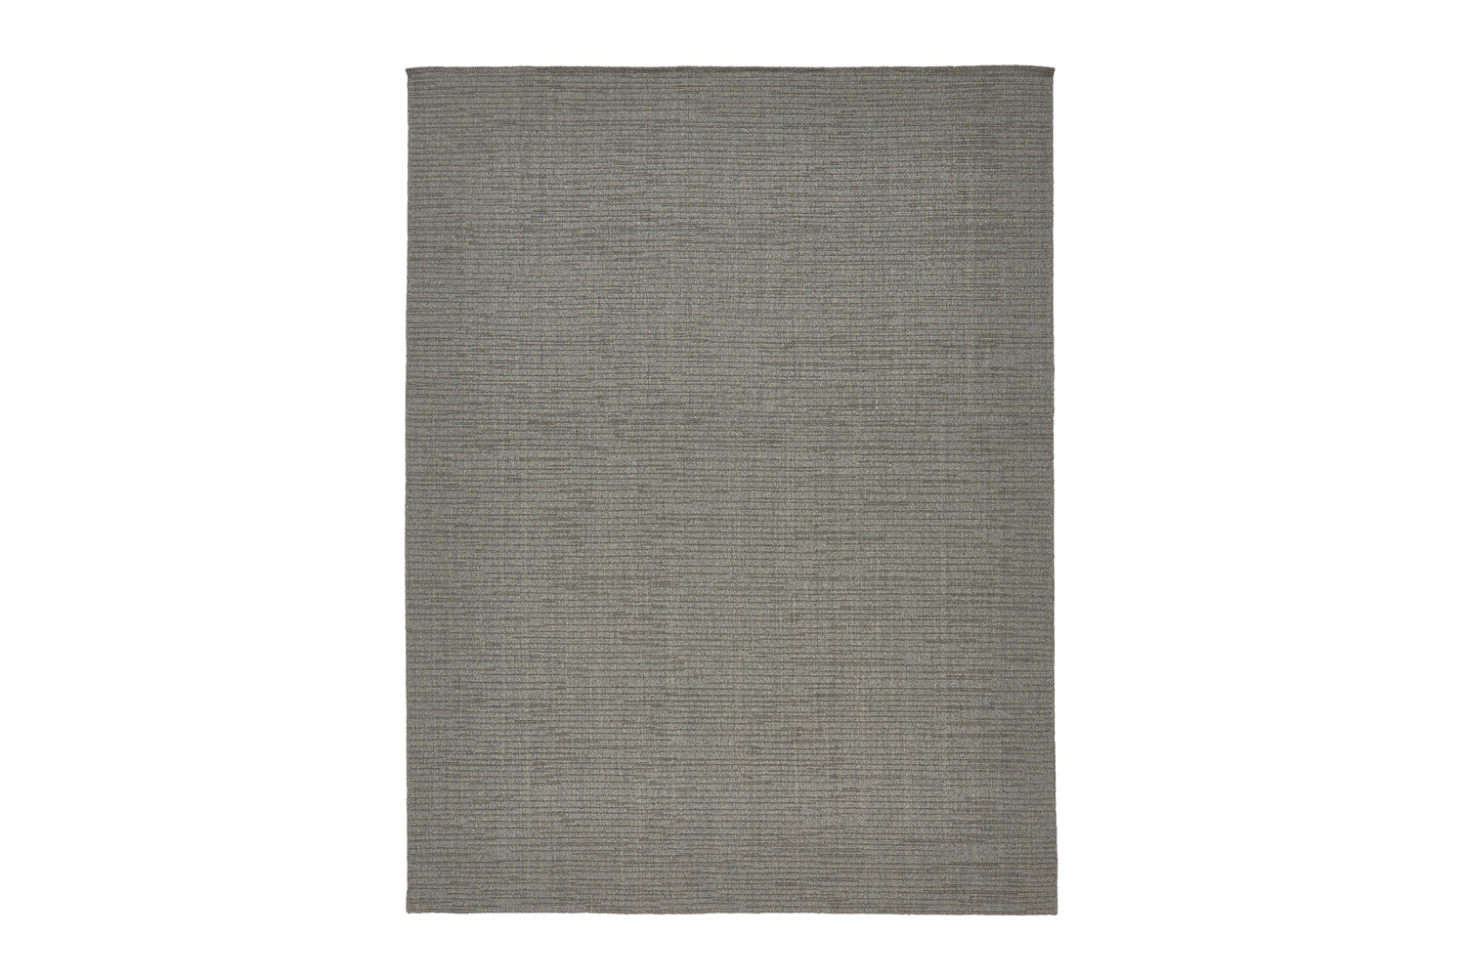 Currently on sale, the ABC Carpet & Home Contemporary Wool Rug is $src=